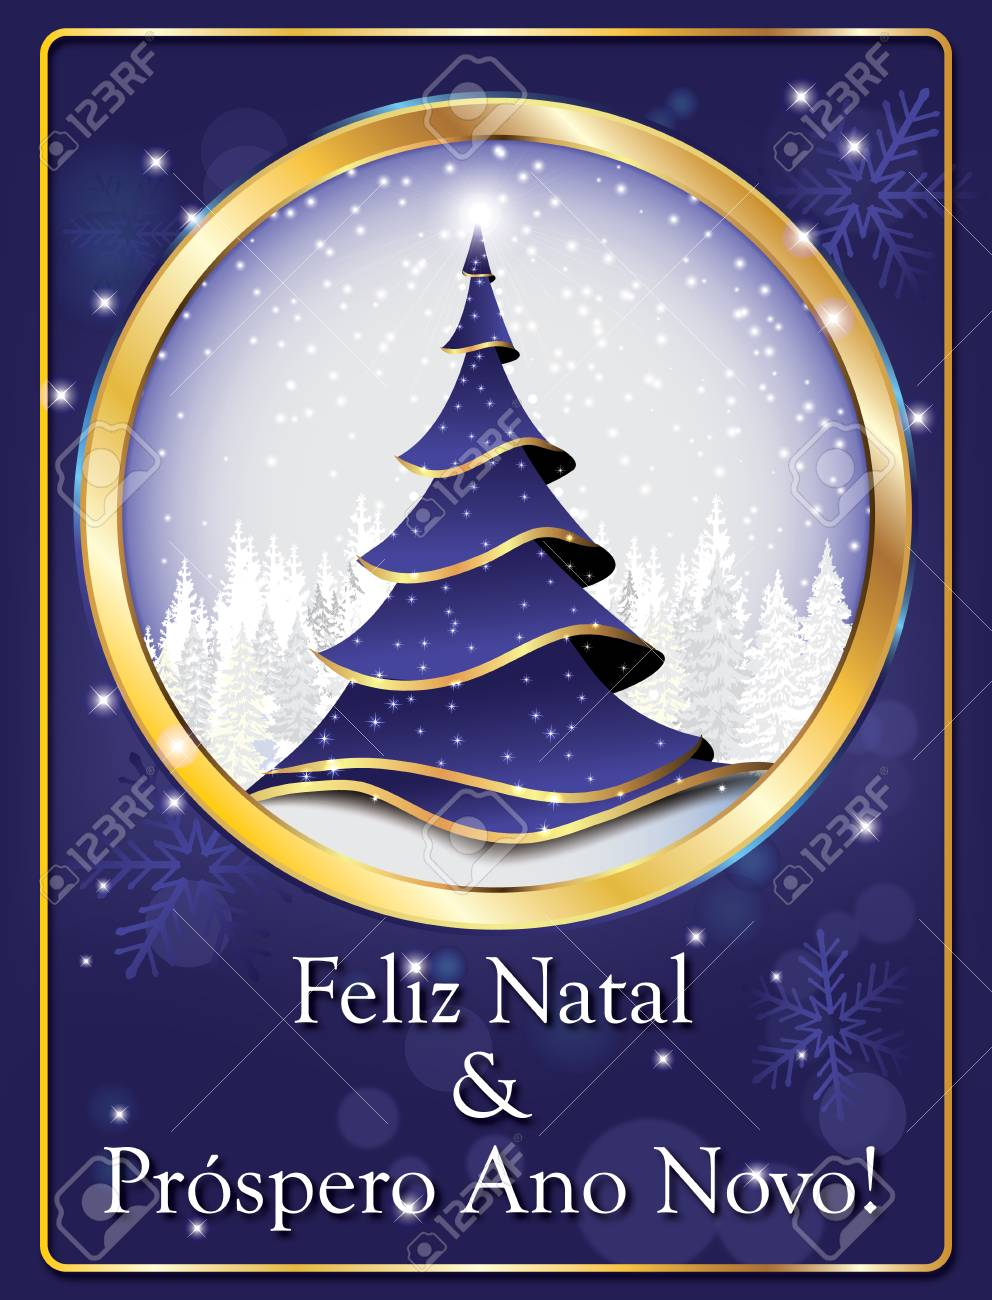 Portuguese greeting card for winter season 2017 merry christmas portuguese greeting card for winter season 2017 merry christmas and a happy new year kristyandbryce Image collections